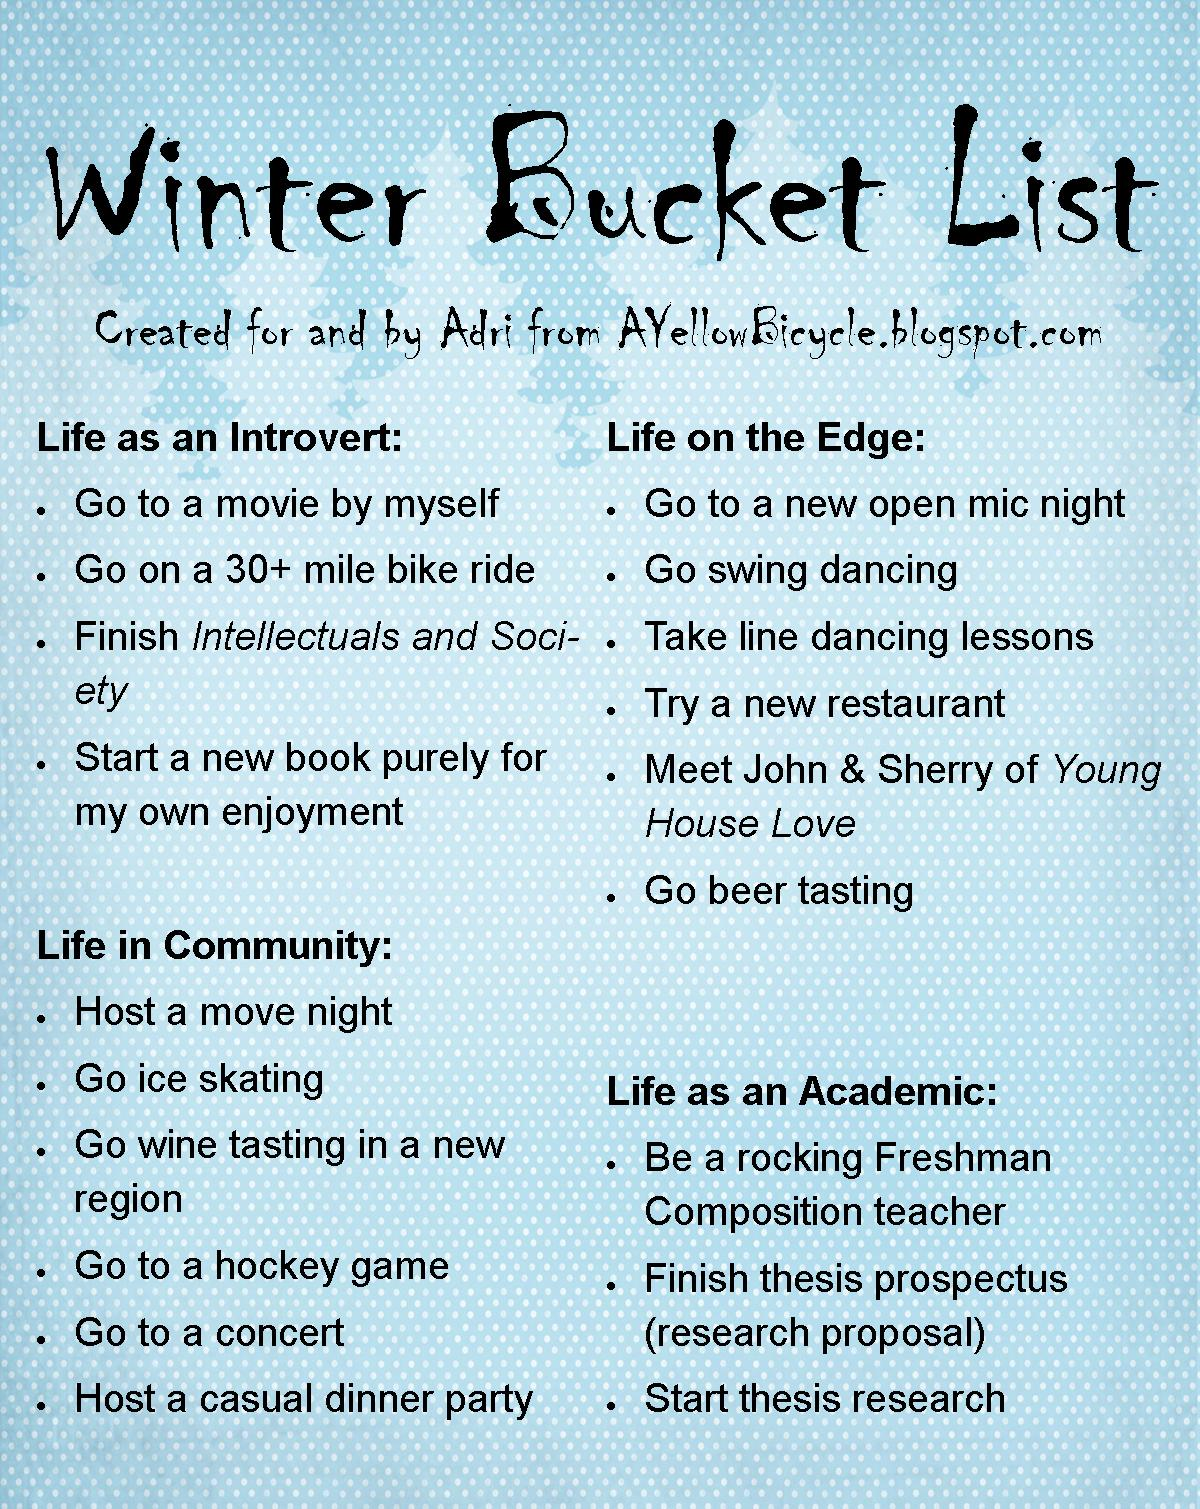 As promised, here is my Winter Bucket List! I39;m pretty excited about